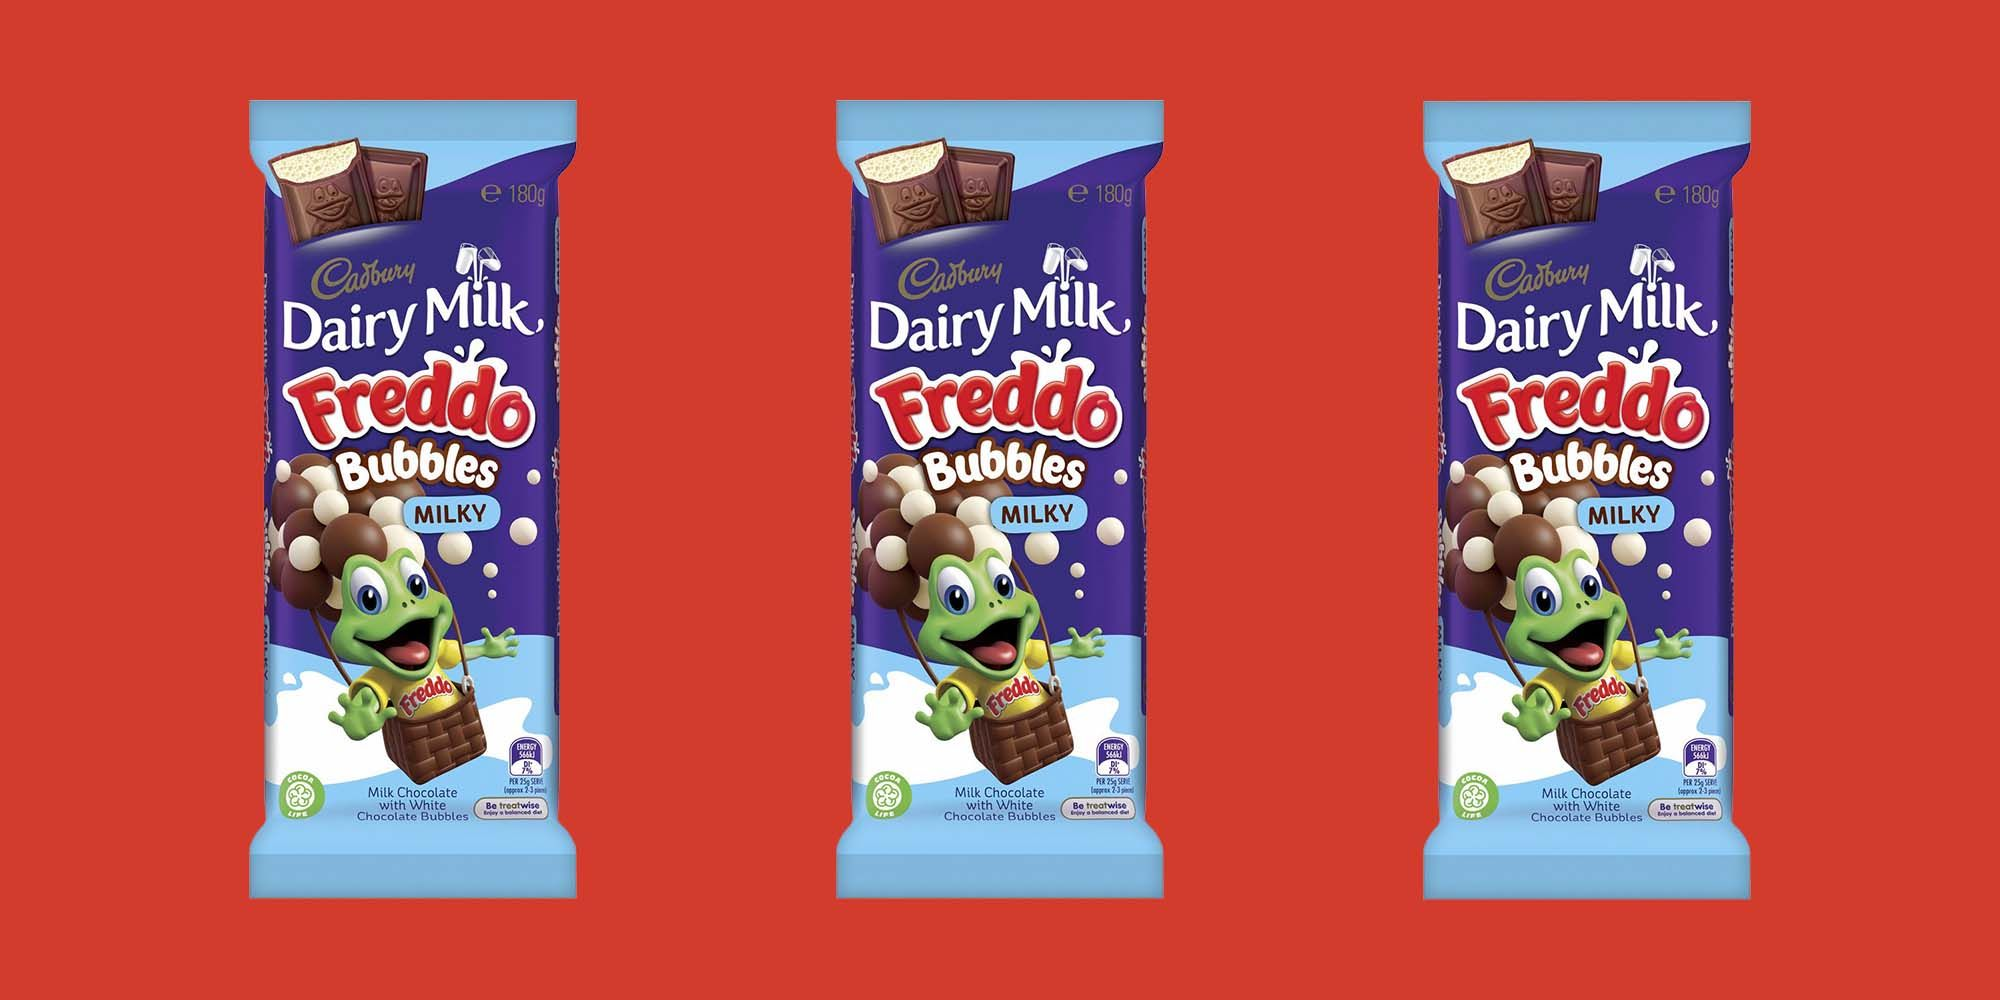 Cadbury's Freddo Bubbles Bar is now available in the UK